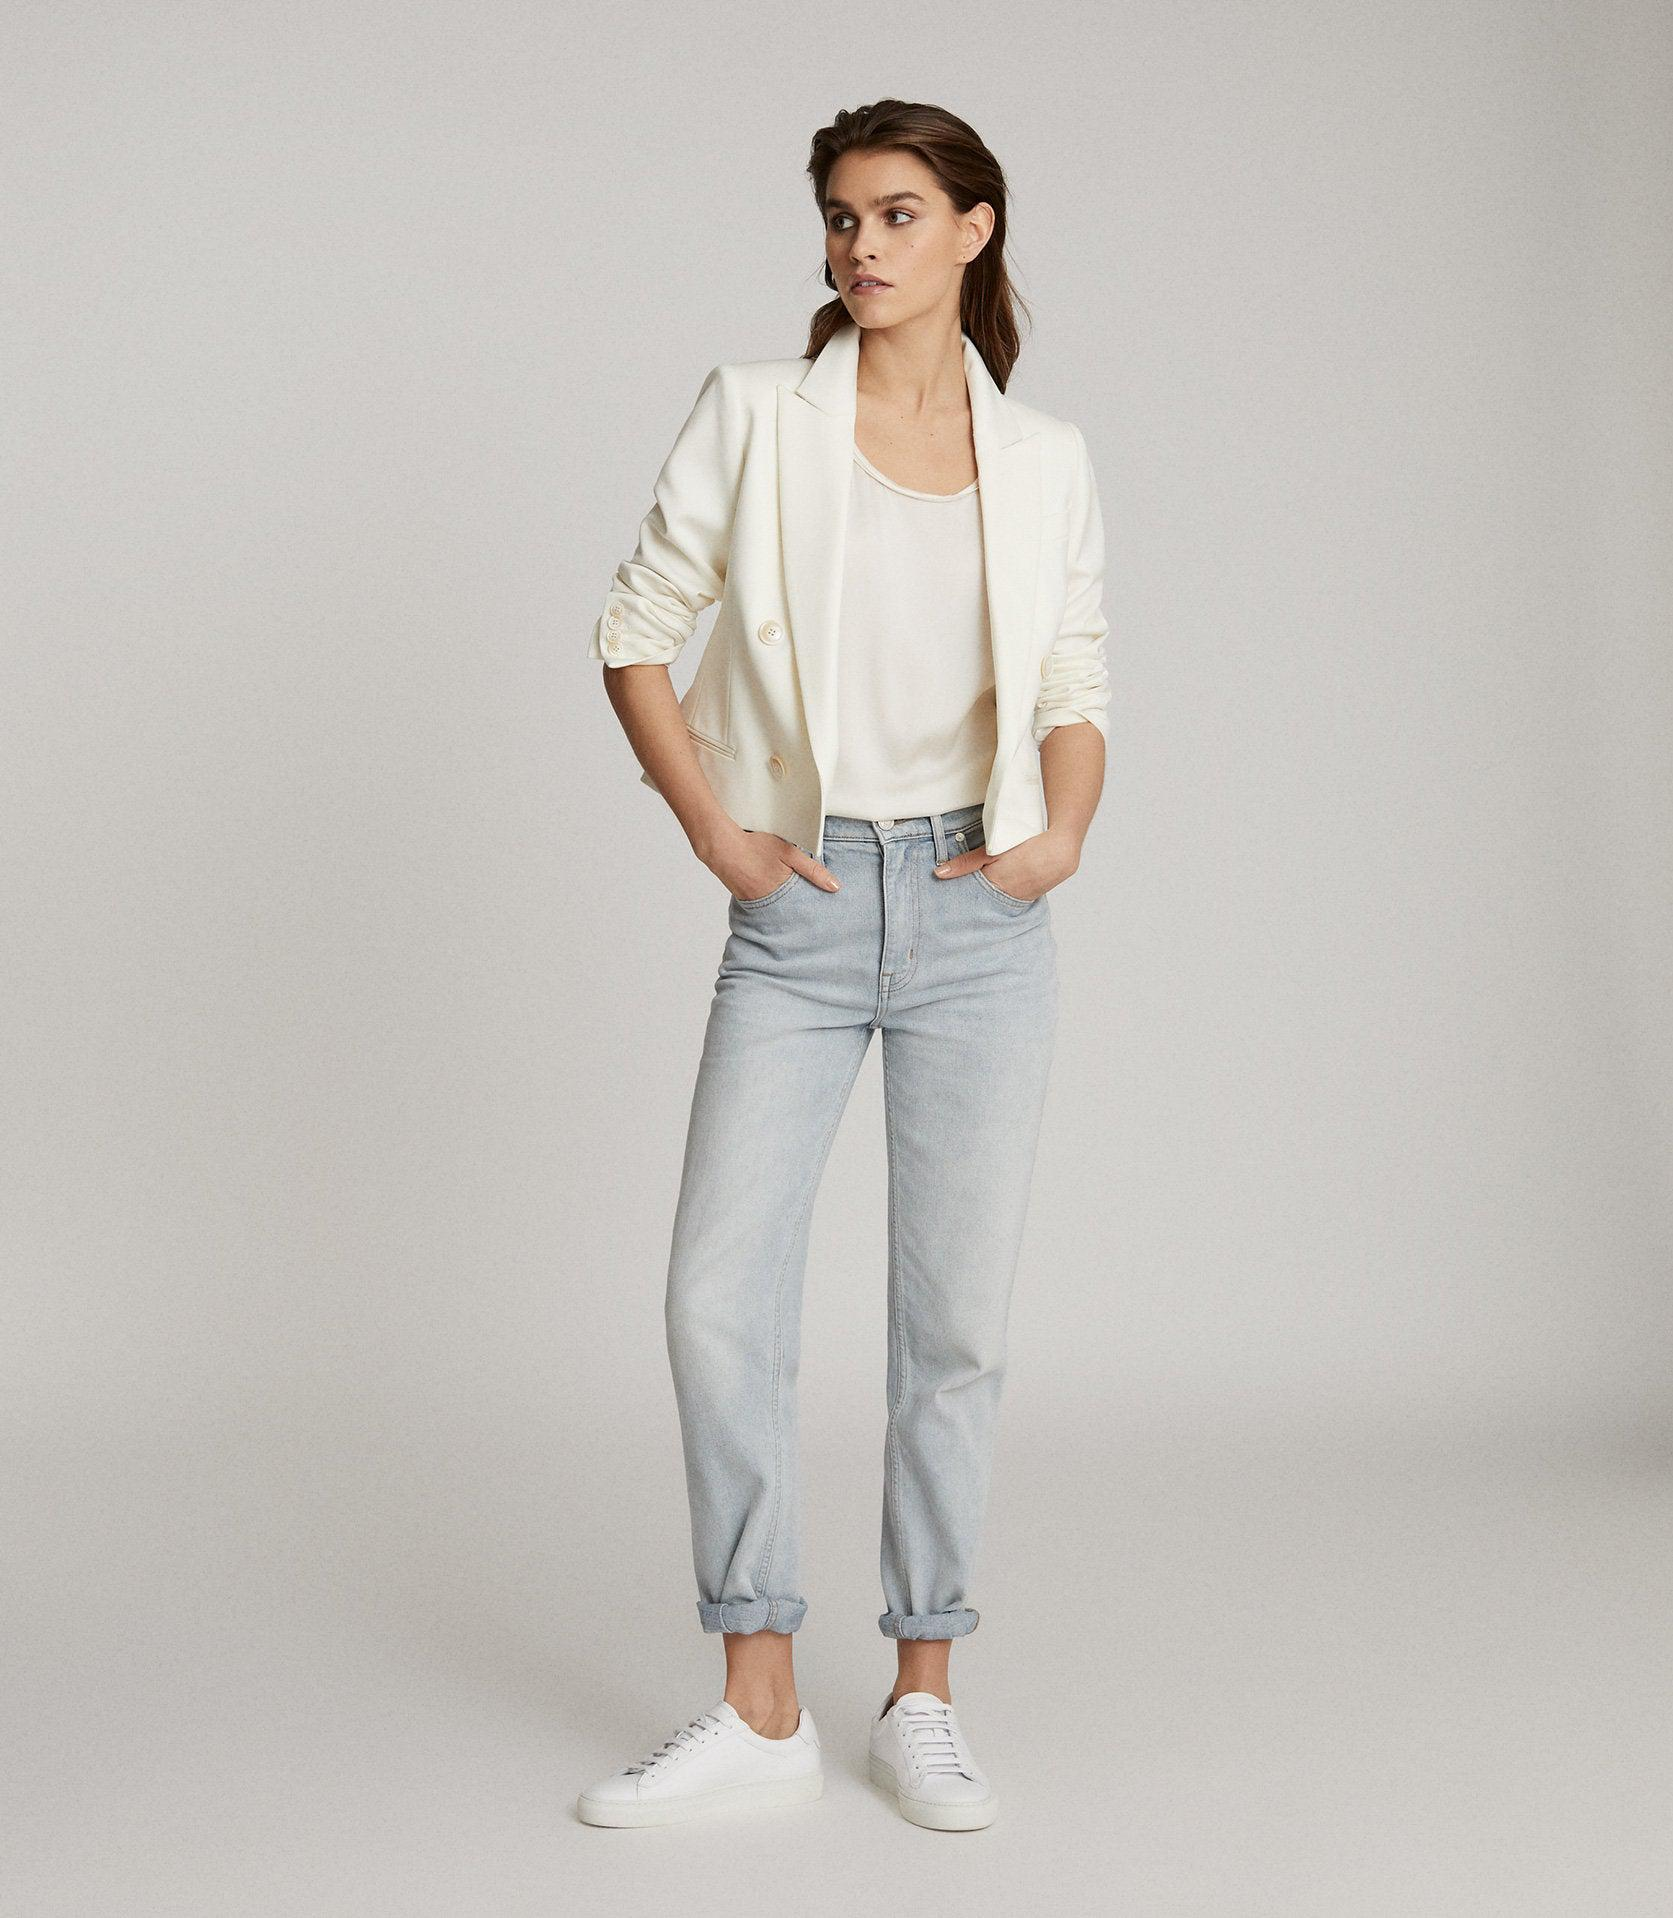 ALEIDA - CROPPED DOUBLE BREASTED BLAZER